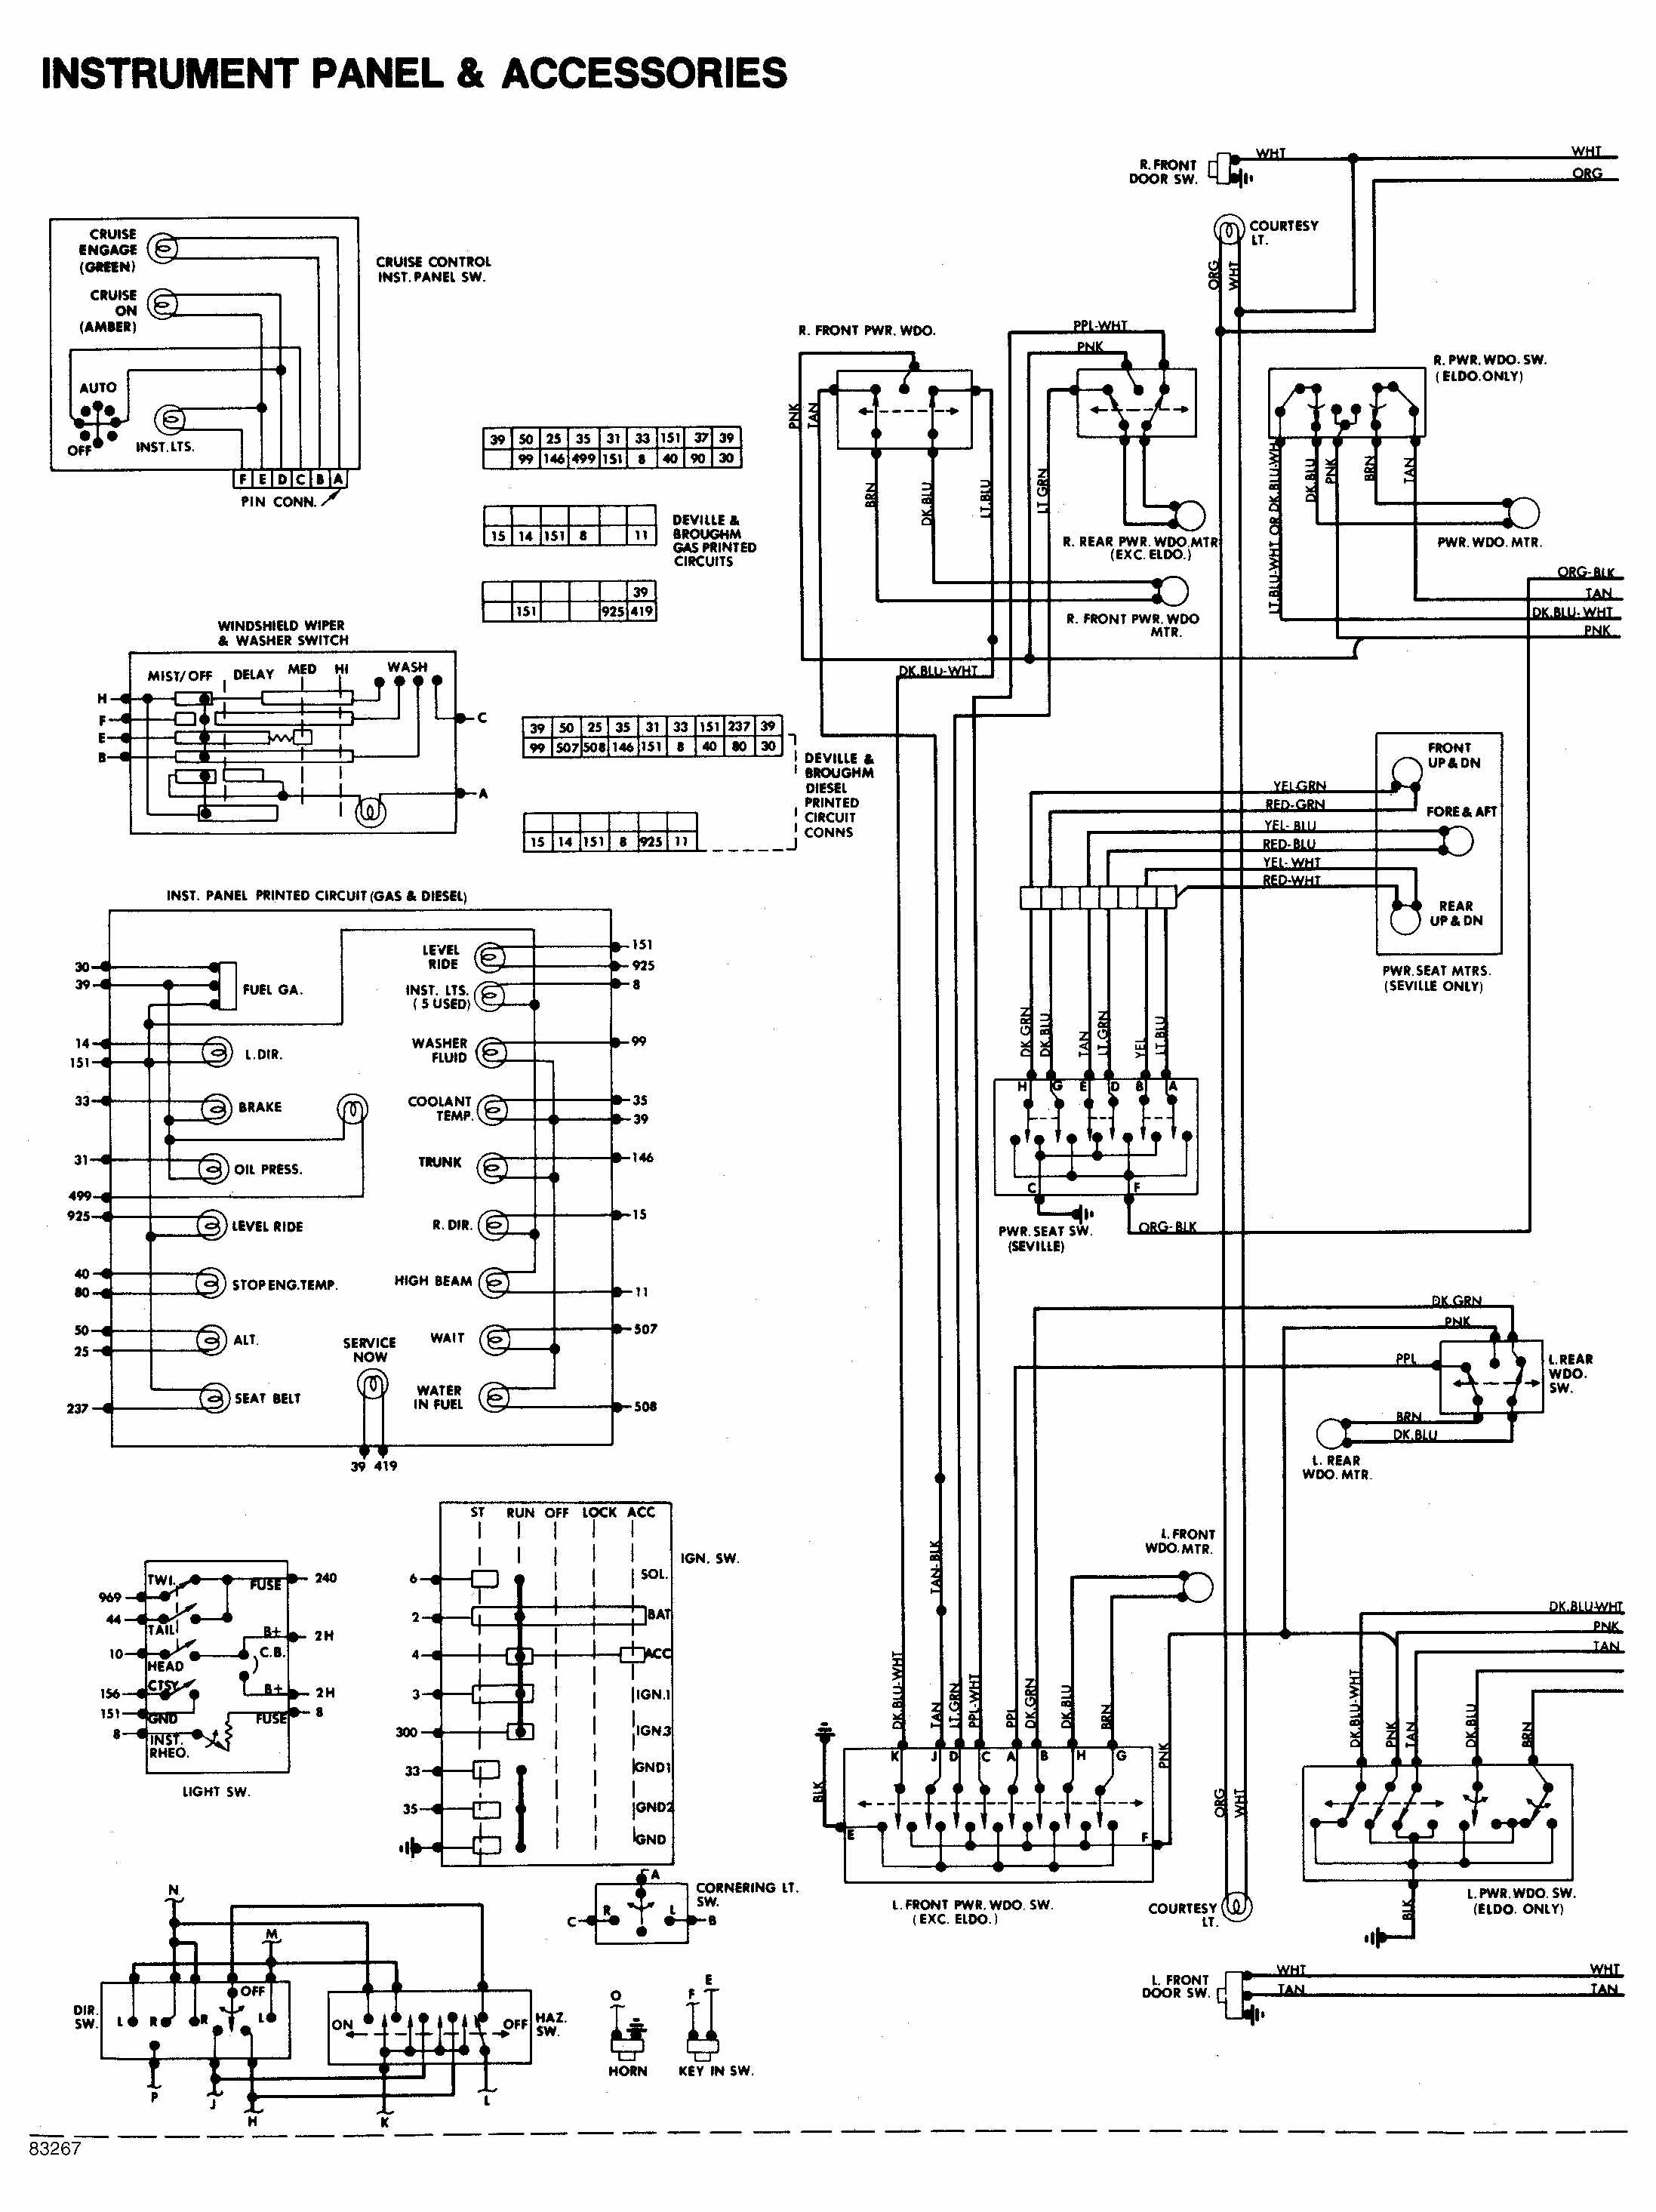 instrument panel and accessories wiring diagram of 1984 cadillac deville 84 corvette wiring diagram 84 gmc column switches \u2022 wiring GMC Fuse Box Diagrams at reclaimingppi.co